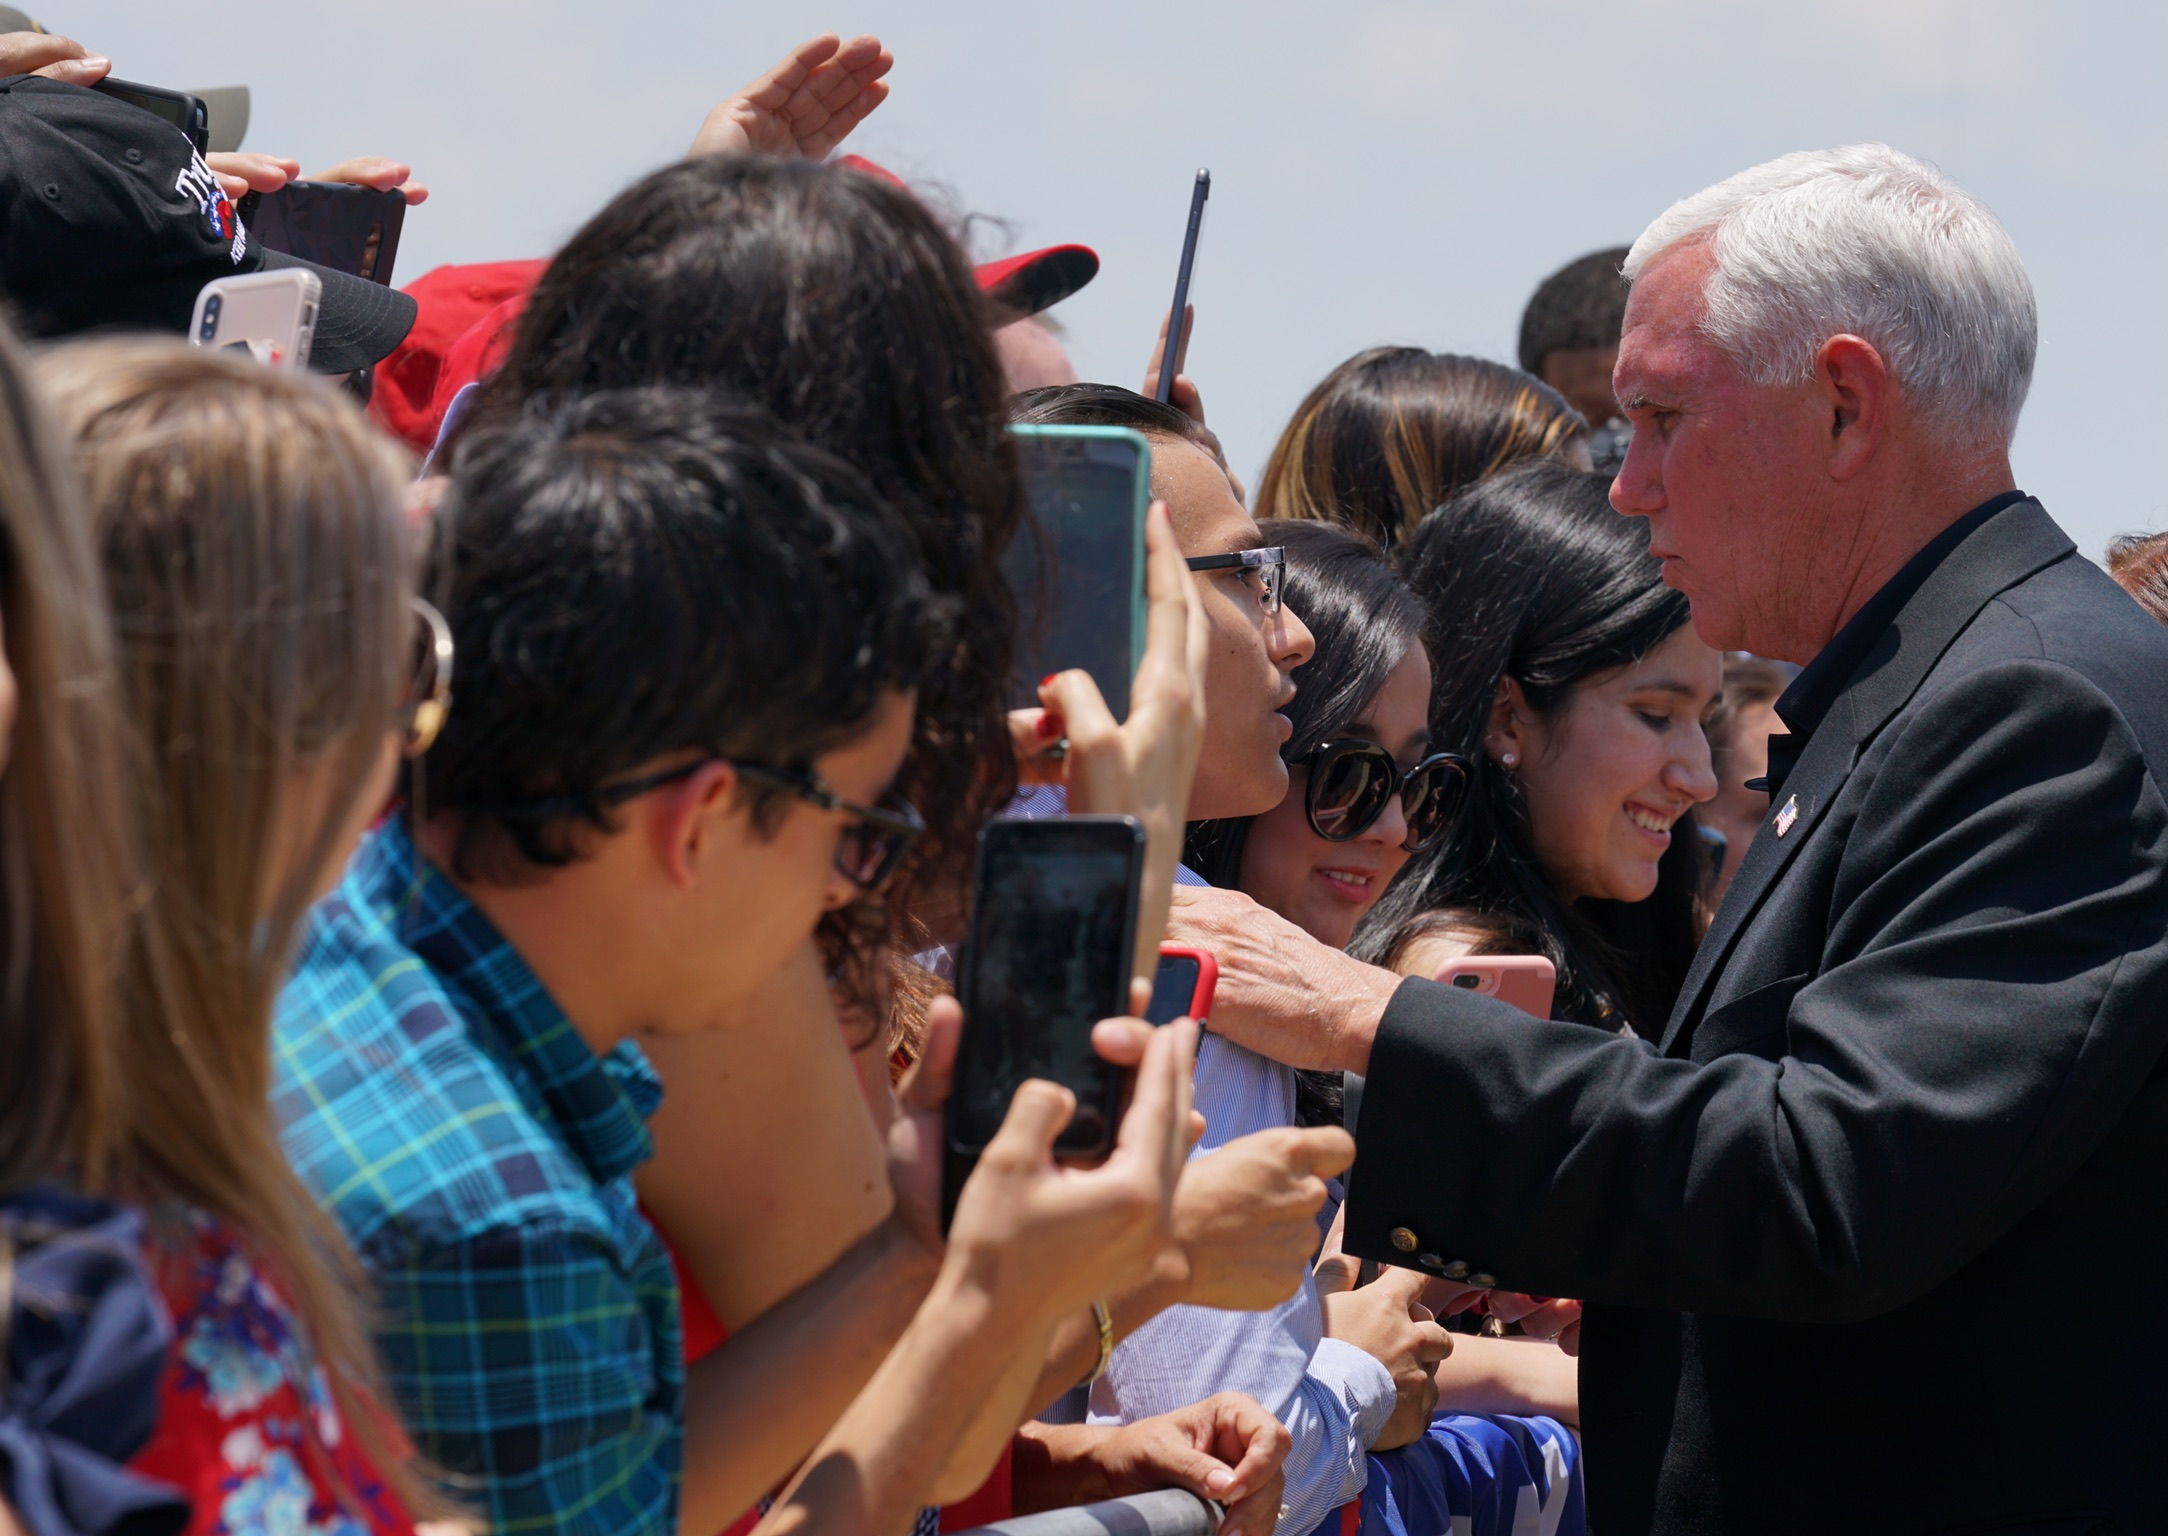 U.S. Vice President Mike Pence talks to his supporters as he arrives at the airport in McAllen, Texas, U.S. July 12, 2019. REUTERS/Veronica G. Cardenas